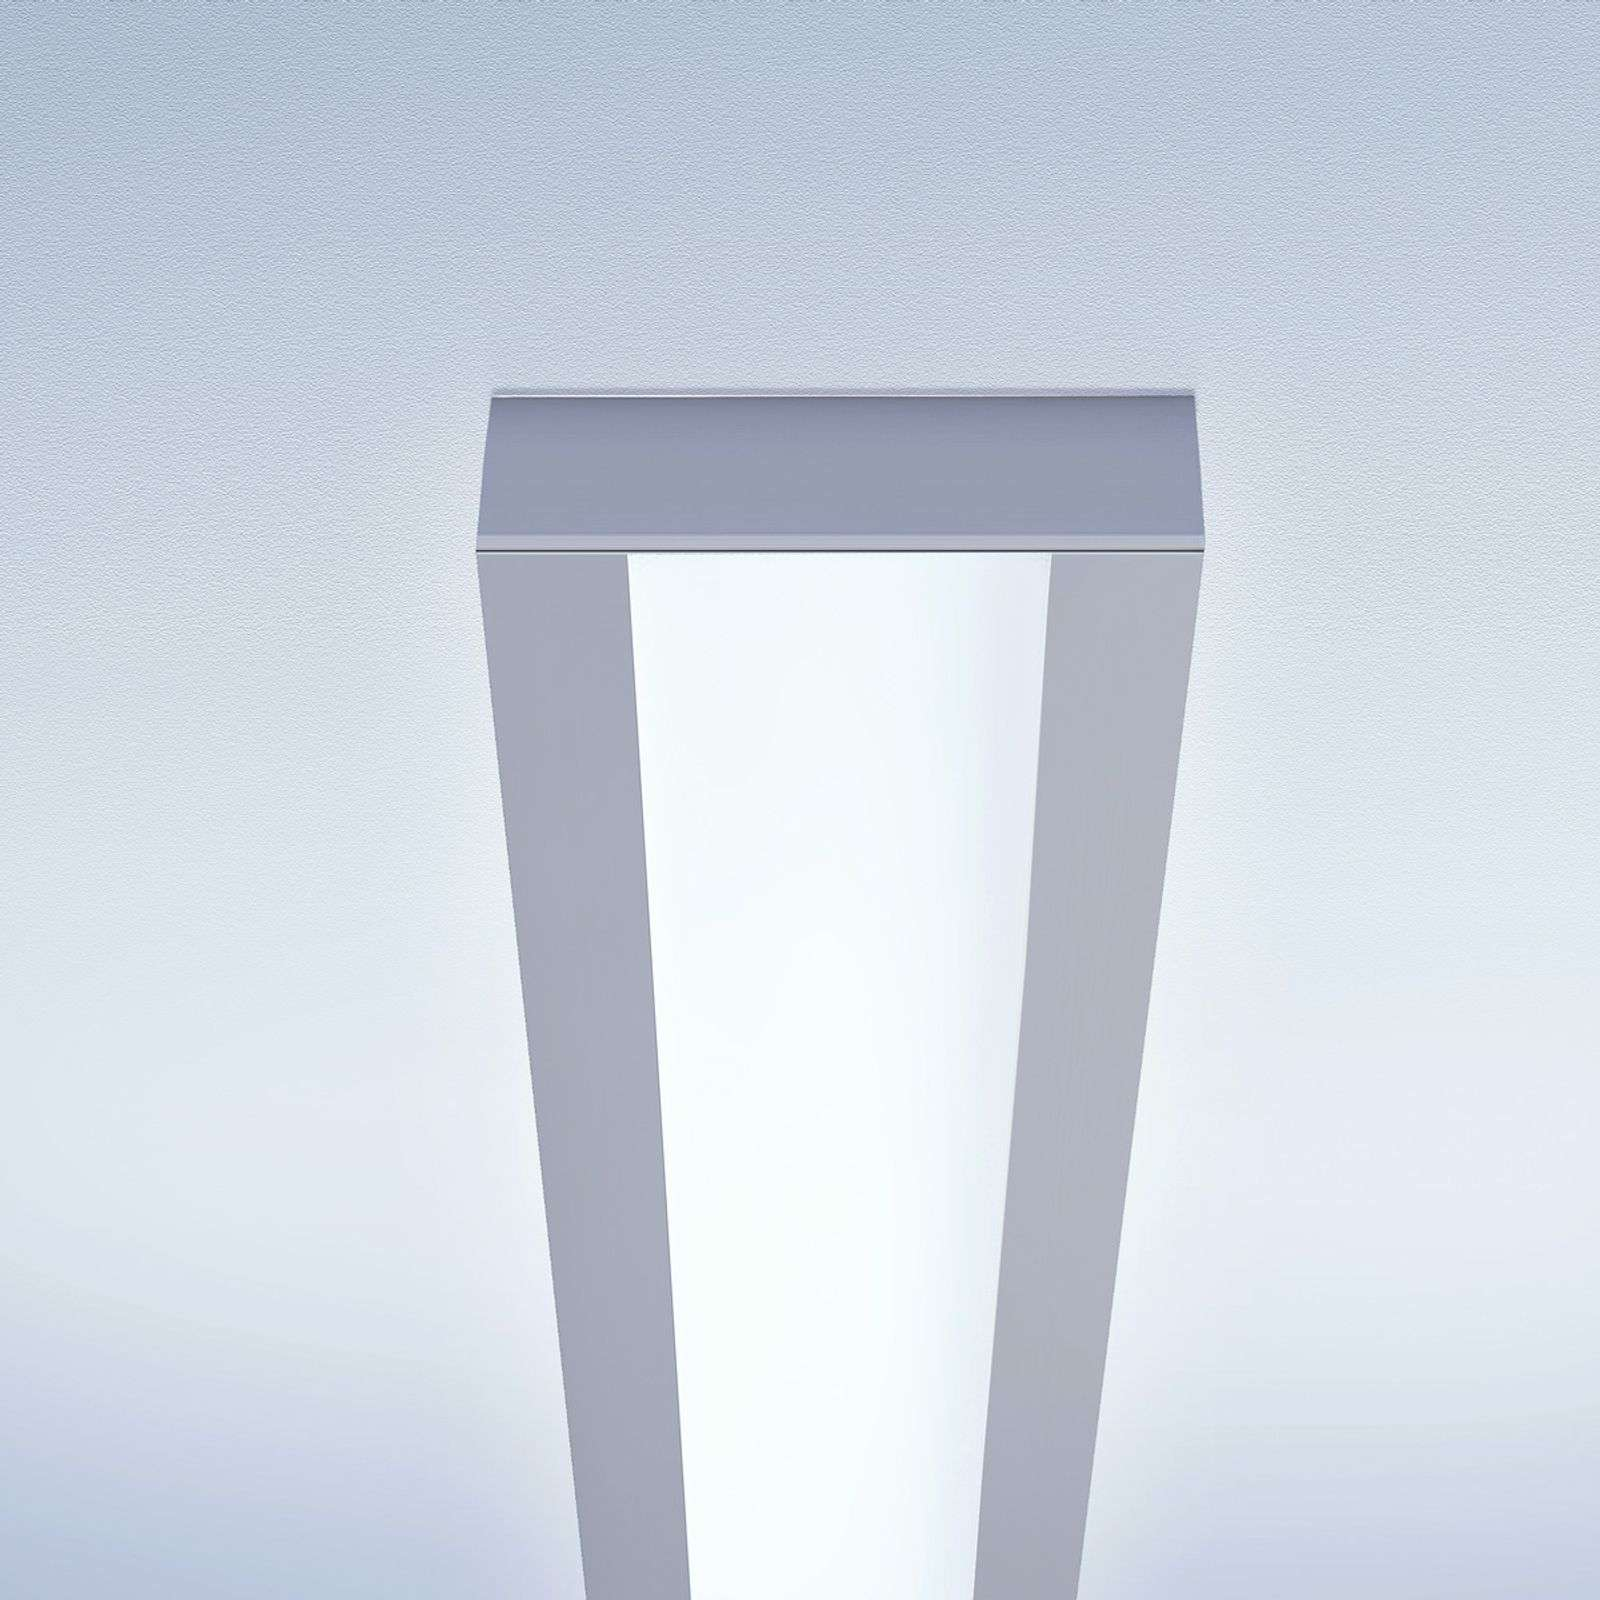 Plafonnier apparent LED Vision-A2 293 cm